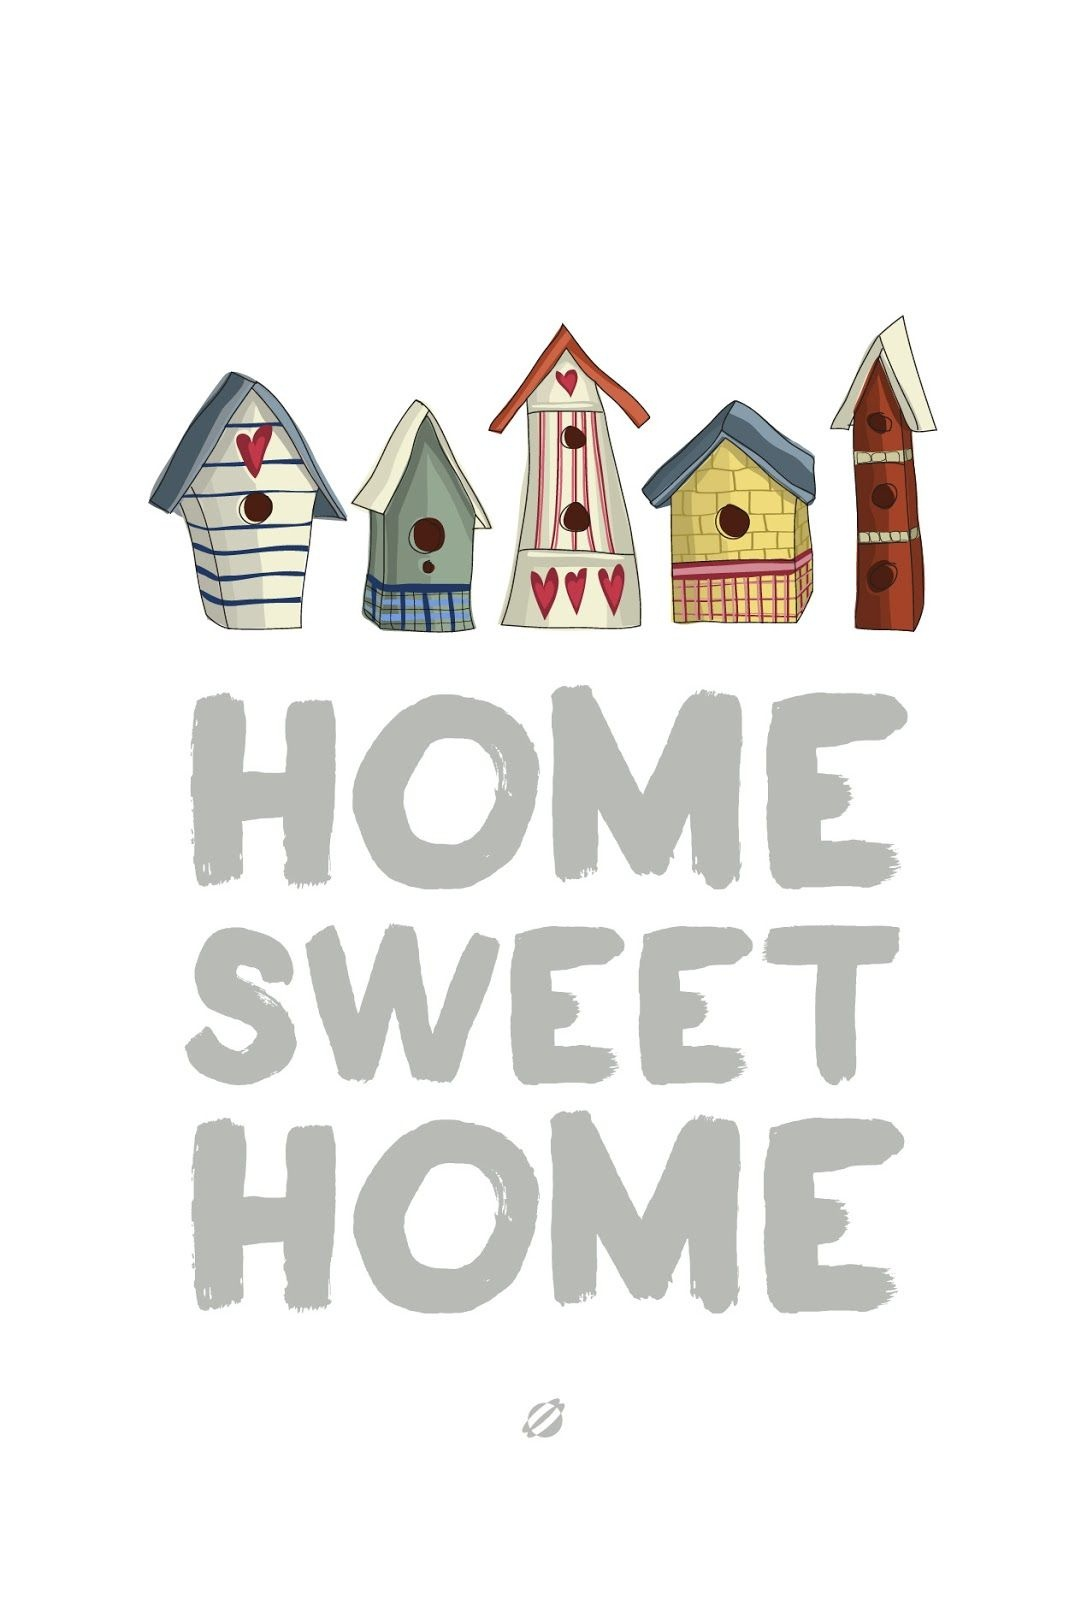 Free Quote Printable: Home Sweet Home / Lostbumblebee   Home Sweet - Home Sweet Home Free Printable